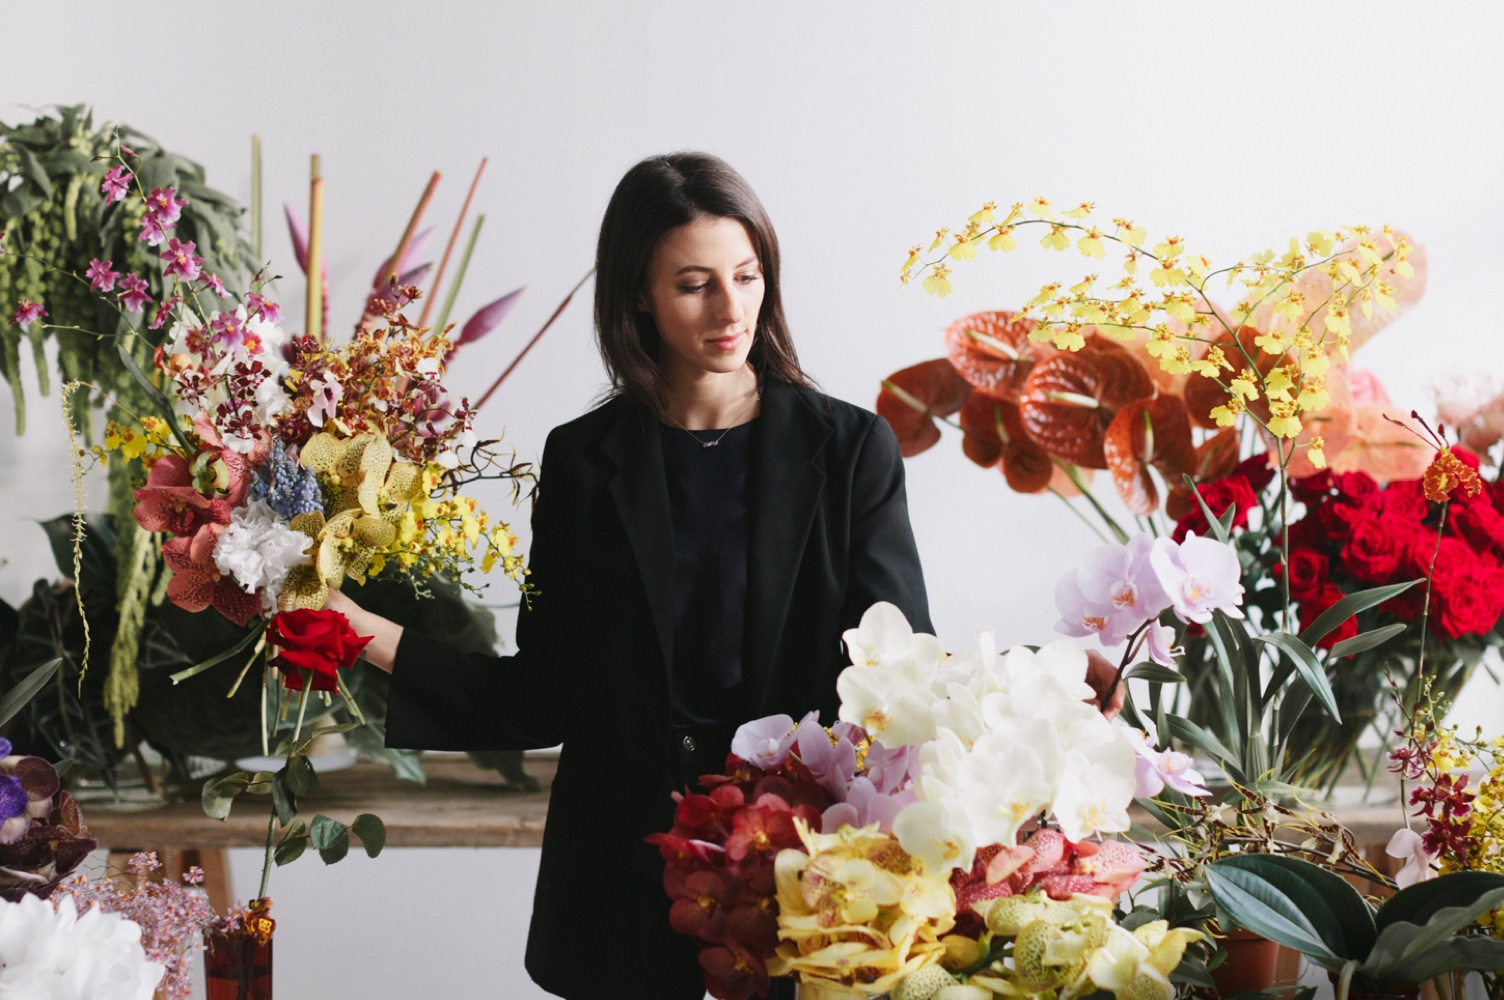 Ruby Barber with flowers